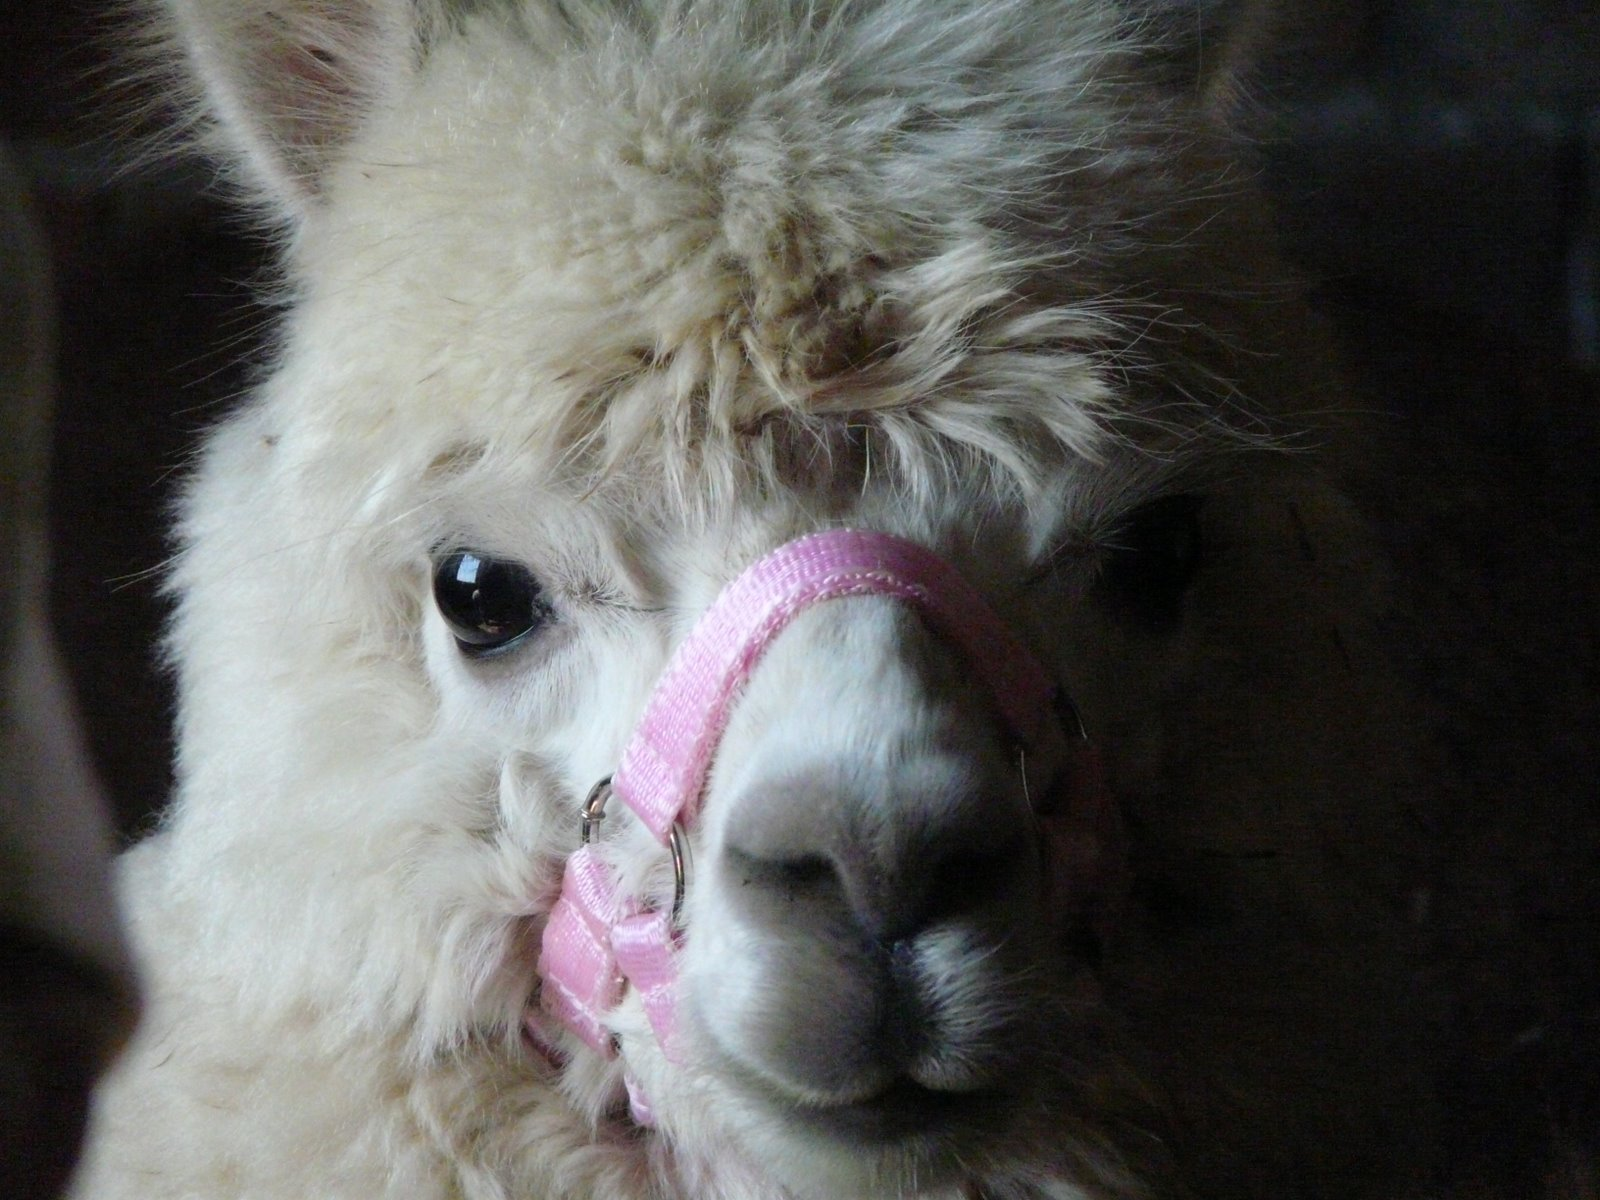 Serena, the Unflappable Alpaca